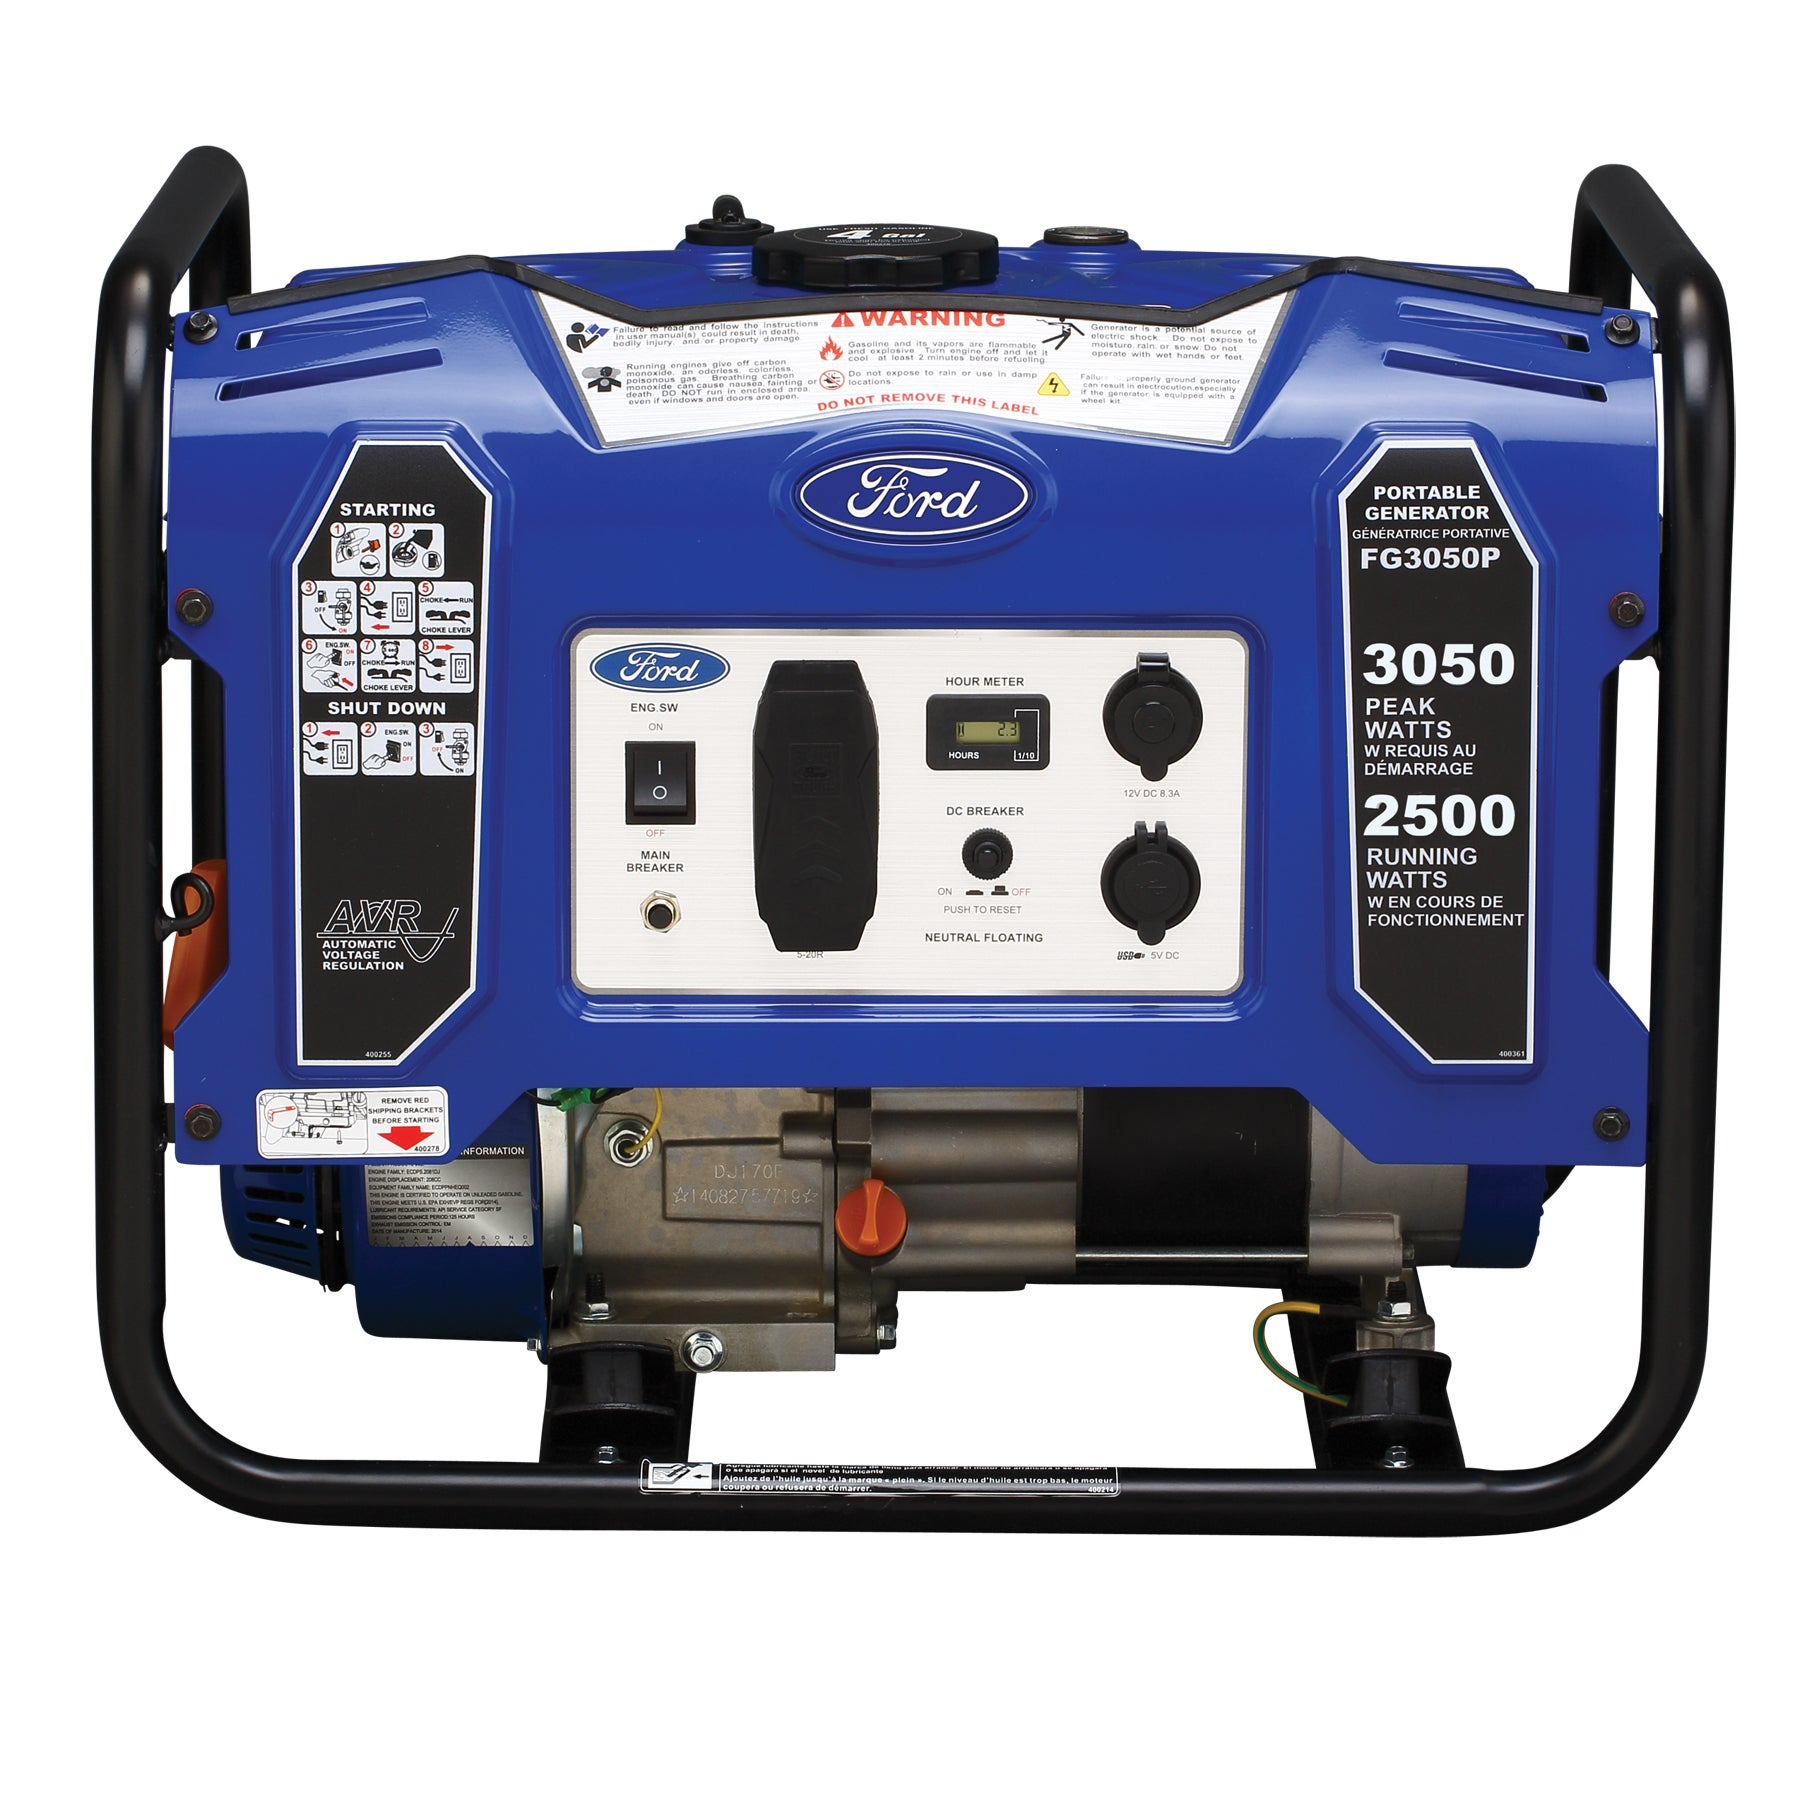 Ford 3050 watt Portable Generator Free Shipping Today